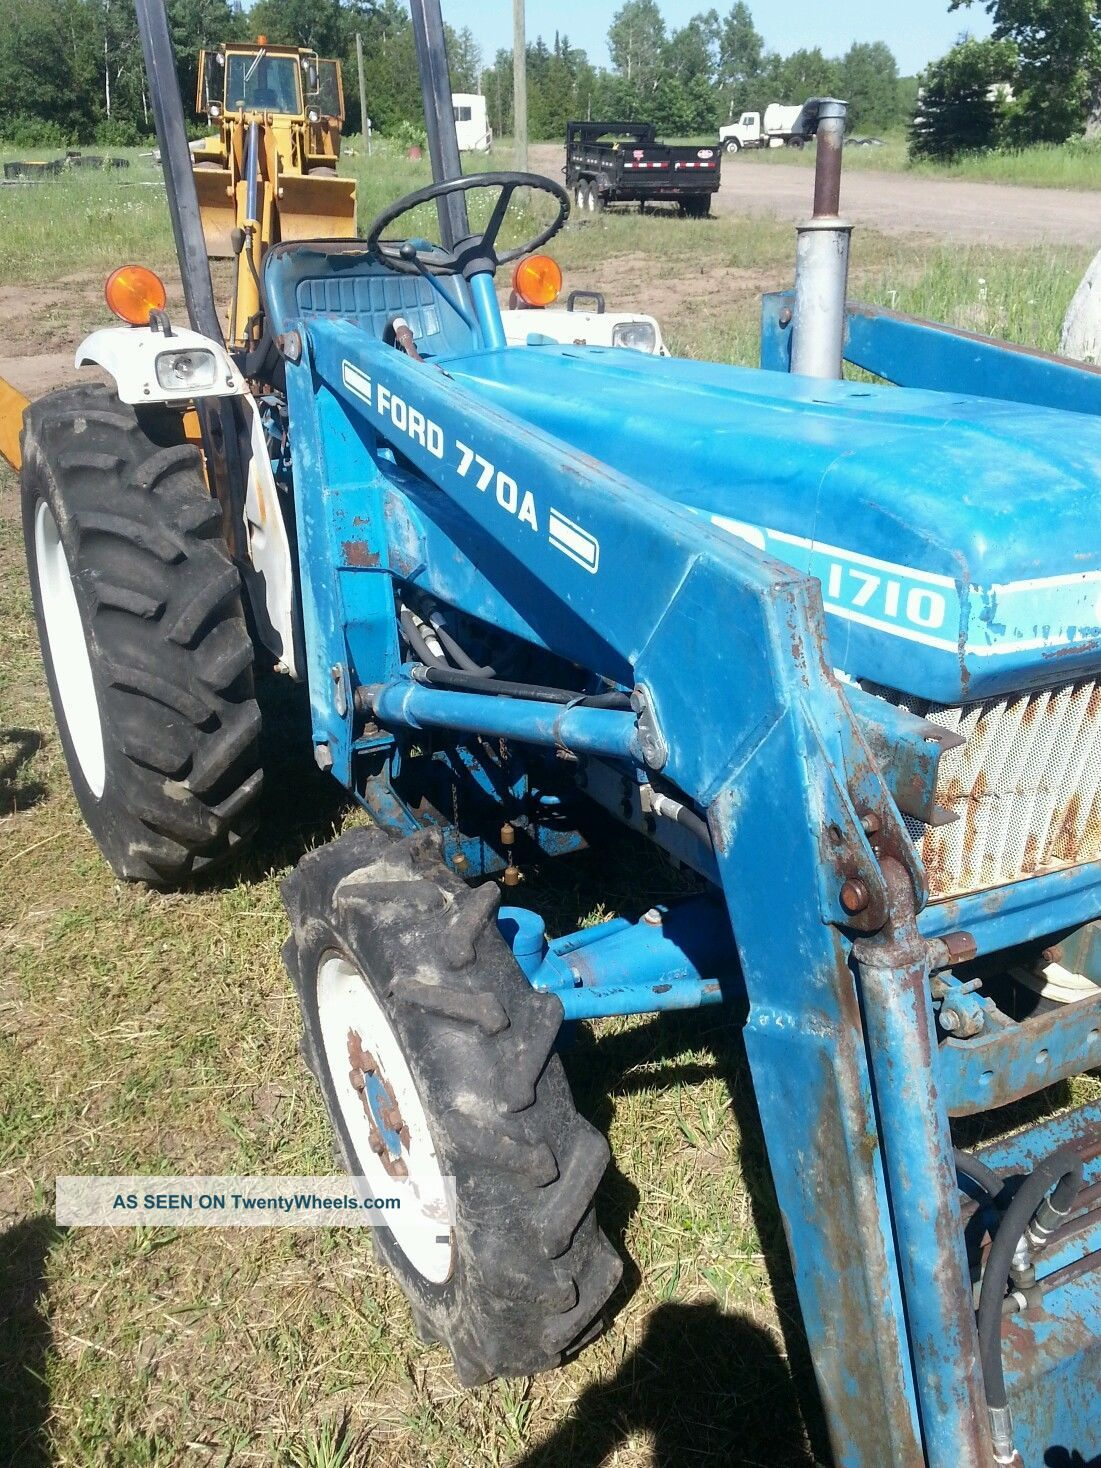 Ford 1710 Tractor Wheel Rims : Ford tractor with woods backhoe